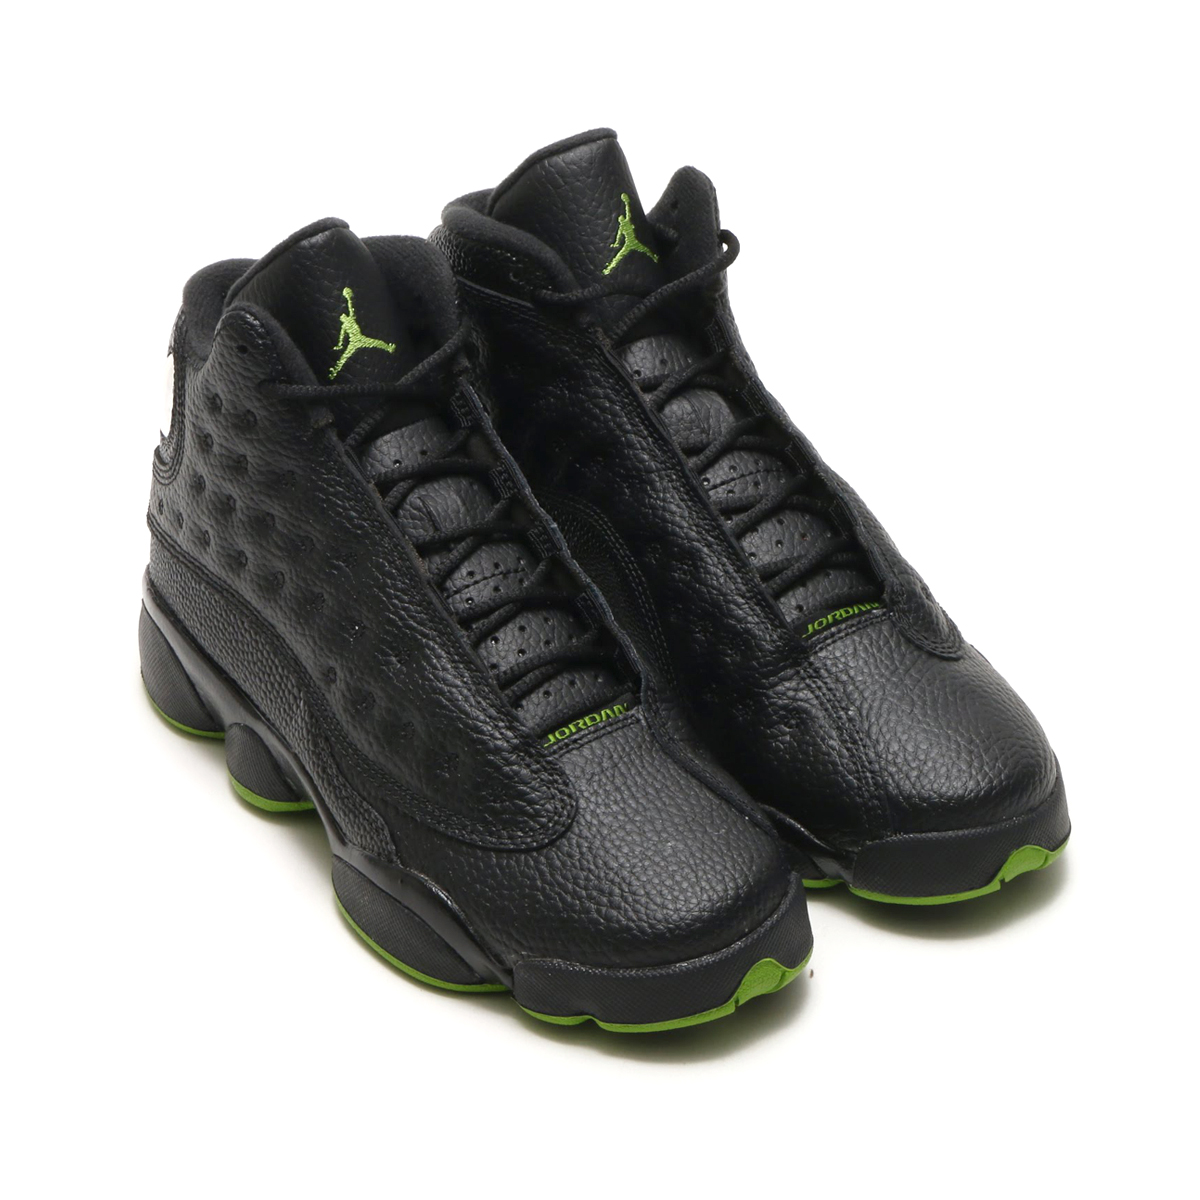 dbc730c319aaf1 It is about 2005 that Air Jordan 13 increased the new color that imaged Michael  Jordan moving like a Black Panther. I included full-scale leather  structure